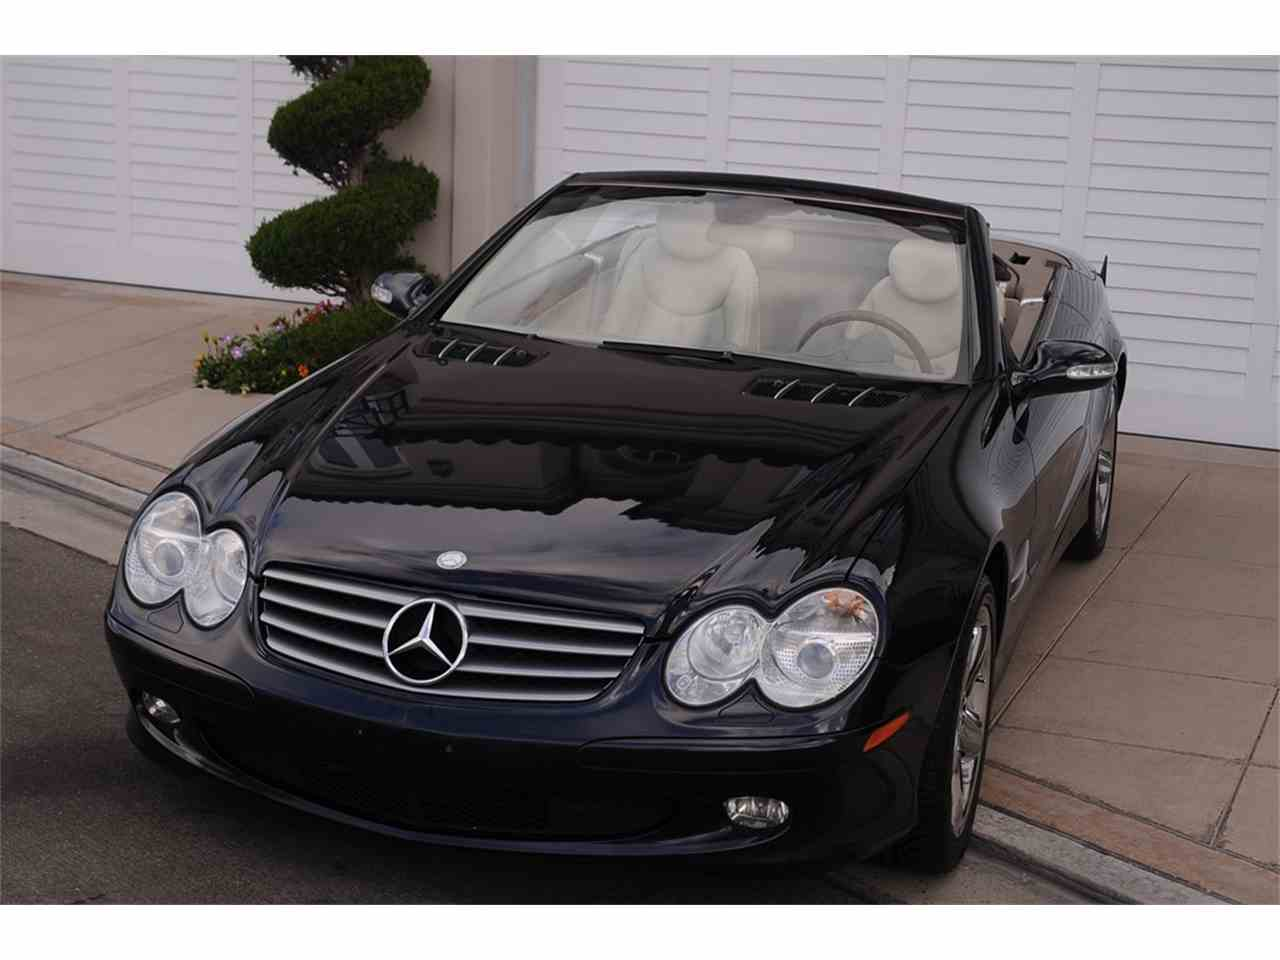 Large Picture of 2003 Mercedes-Benz SL500 located in Costa Mesa California - M694